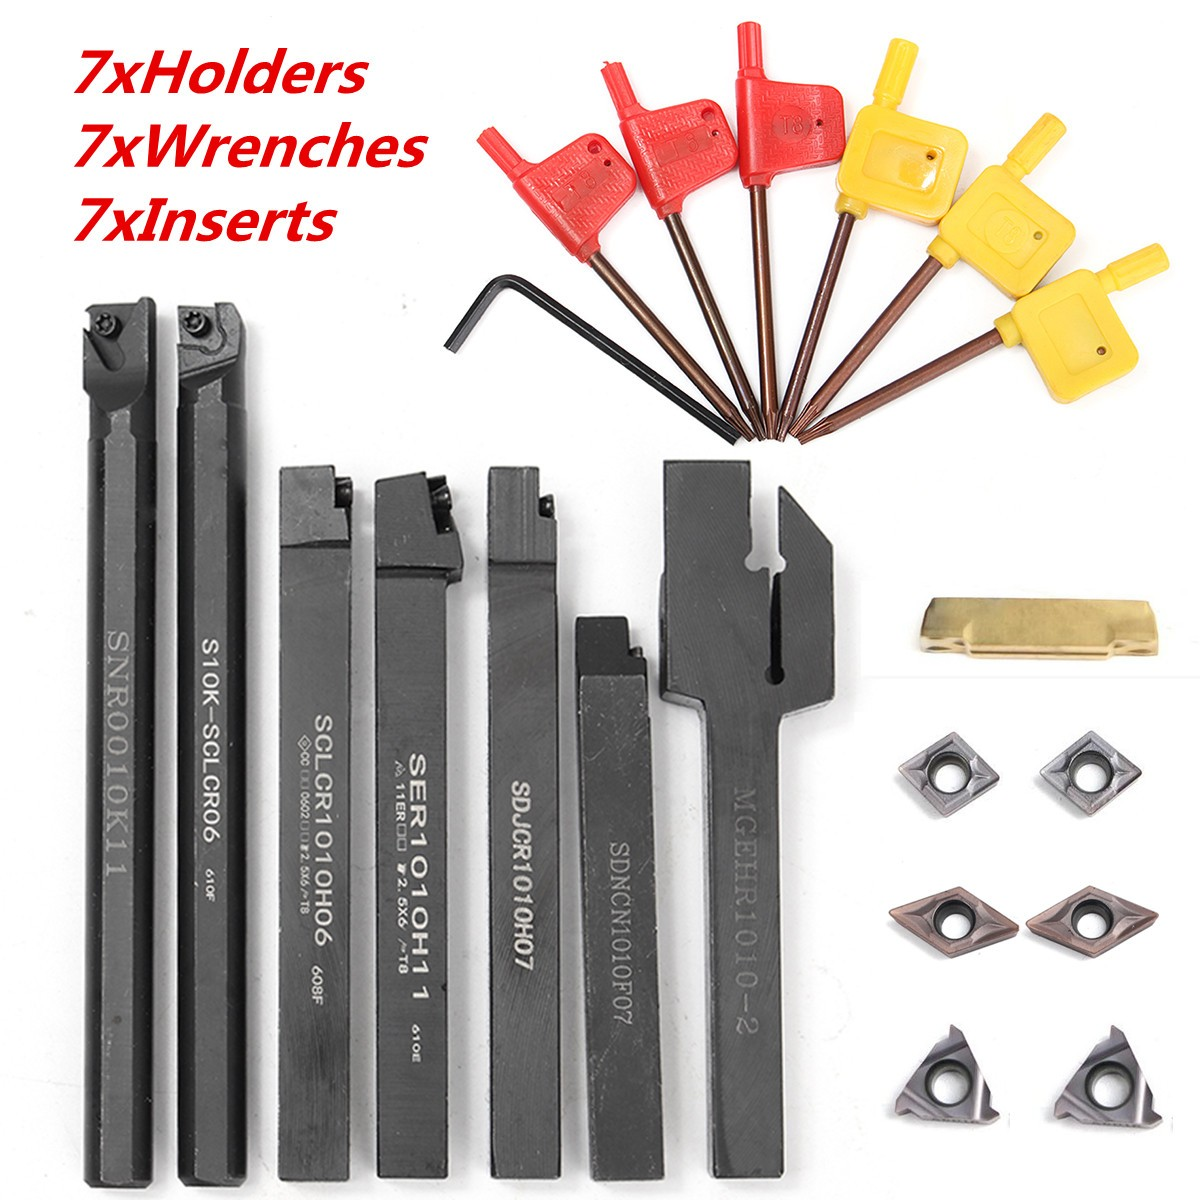 21PCS/SET DCMT CCMT Carbide Insert + 10mm Boring Bar Tool Holder + Wrench For Lathe Turning Tool